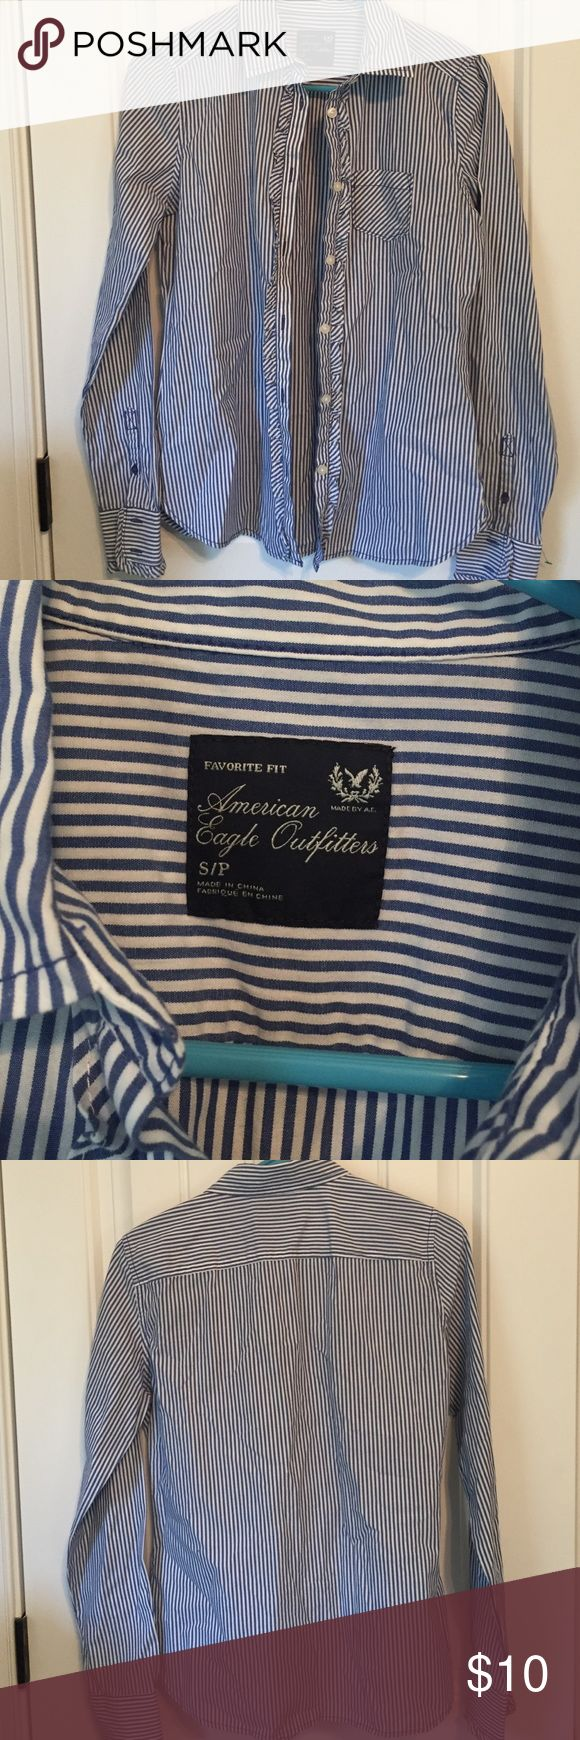 AE Outfitters Button Down Blouse Sz S/P Brand new never worn, comes from a smoke and pet free home. American Eagle Outfitters Tops Button Down Shirts